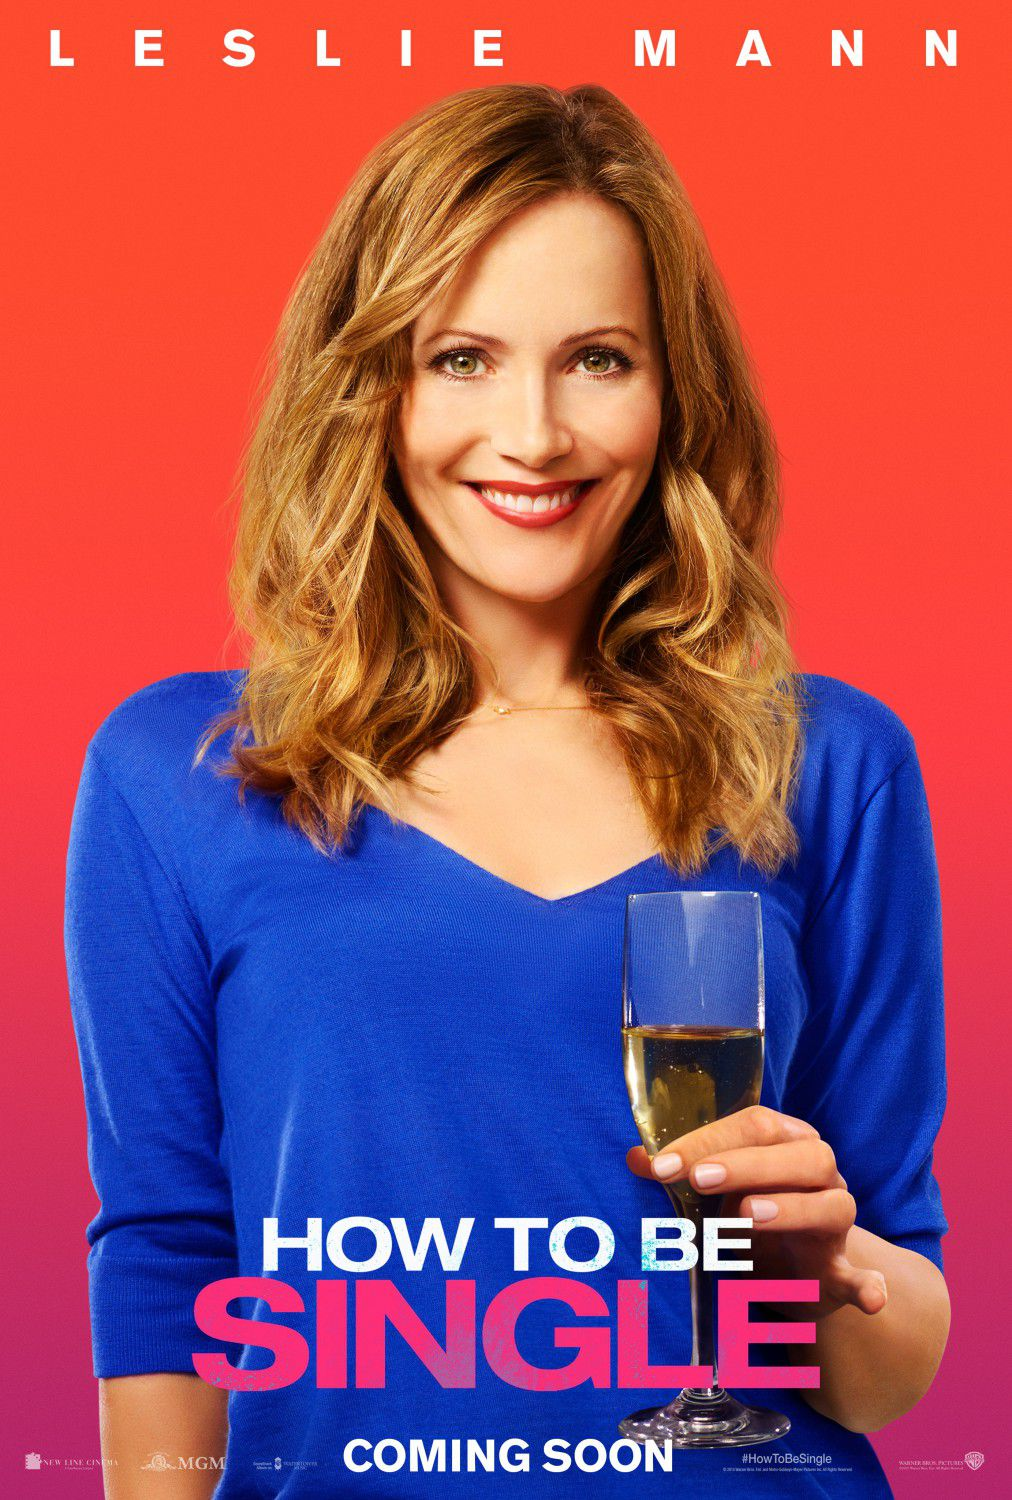 How to be Single - Leslie Mann